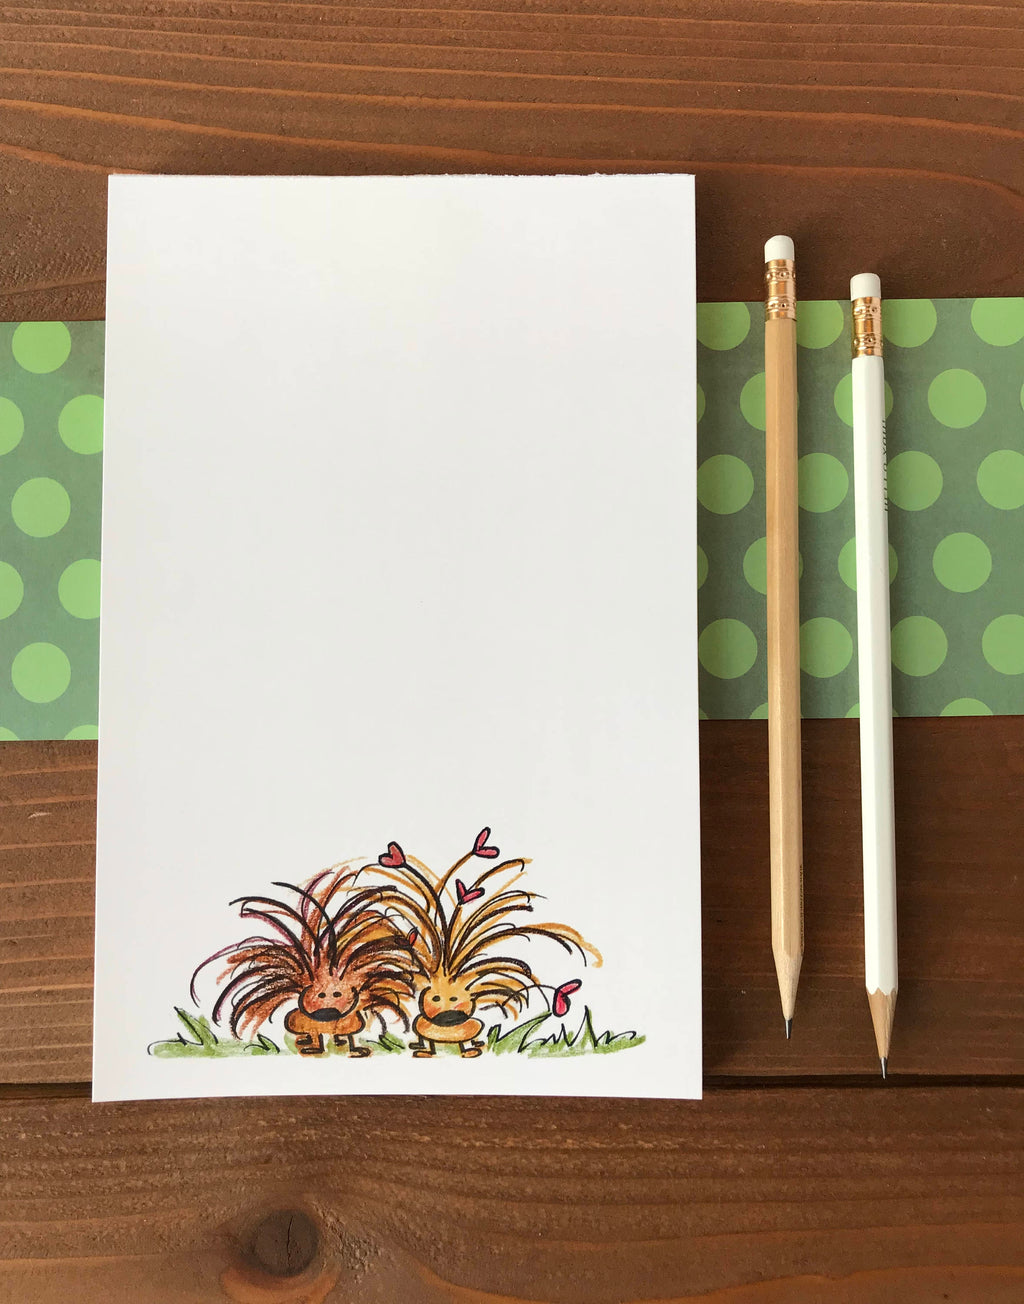 Porcupine Notepad - Personalized Cute Porcupine Gift - 5.5 x 8.5